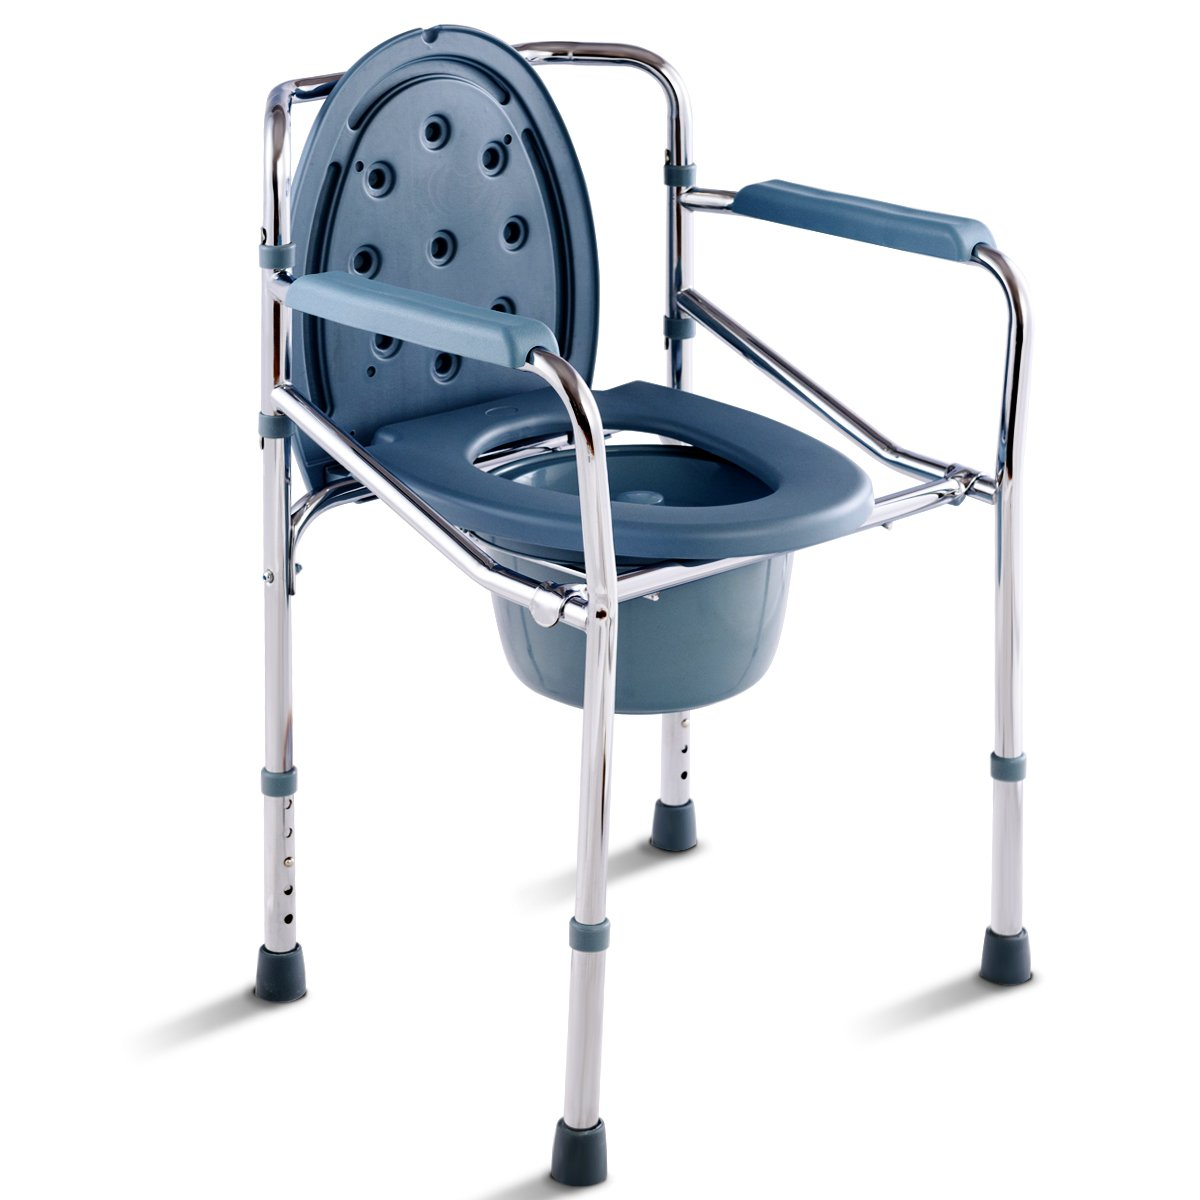 Giantex Adjustable Folding Bedside Commode Portable Medical Toilet Seat Chair for Elderly, Handicap, Seniors Large Capacity Lightweight Disability Aid Chair w/Armrest Removable Bucket, Lid Cover Chro by Giantex